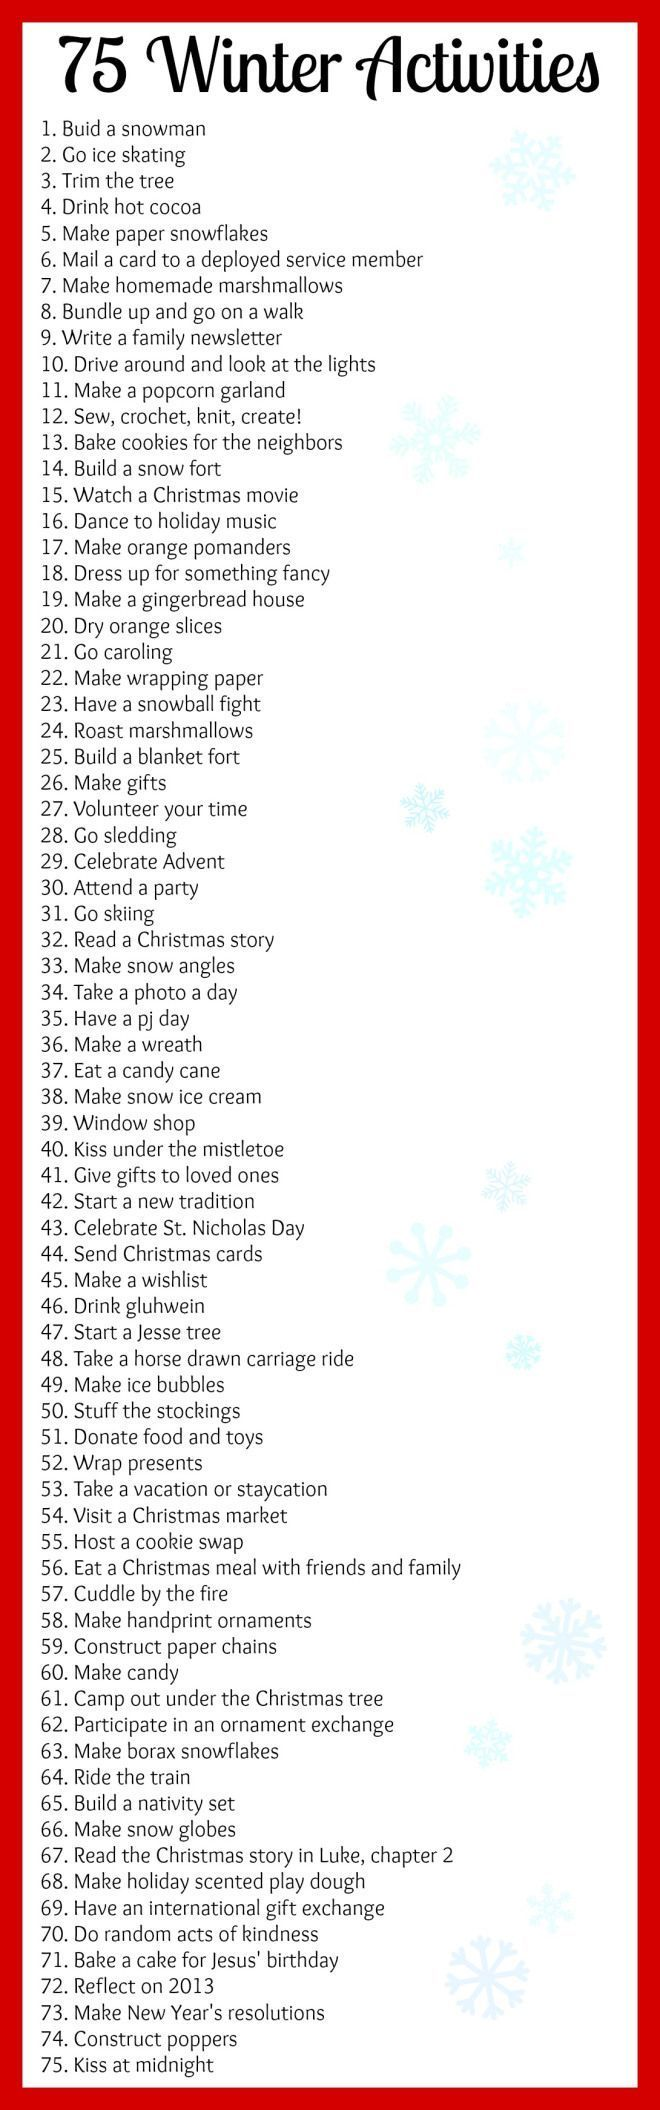 75 Winter Activities for the bucket list or to fill an advent calendar!